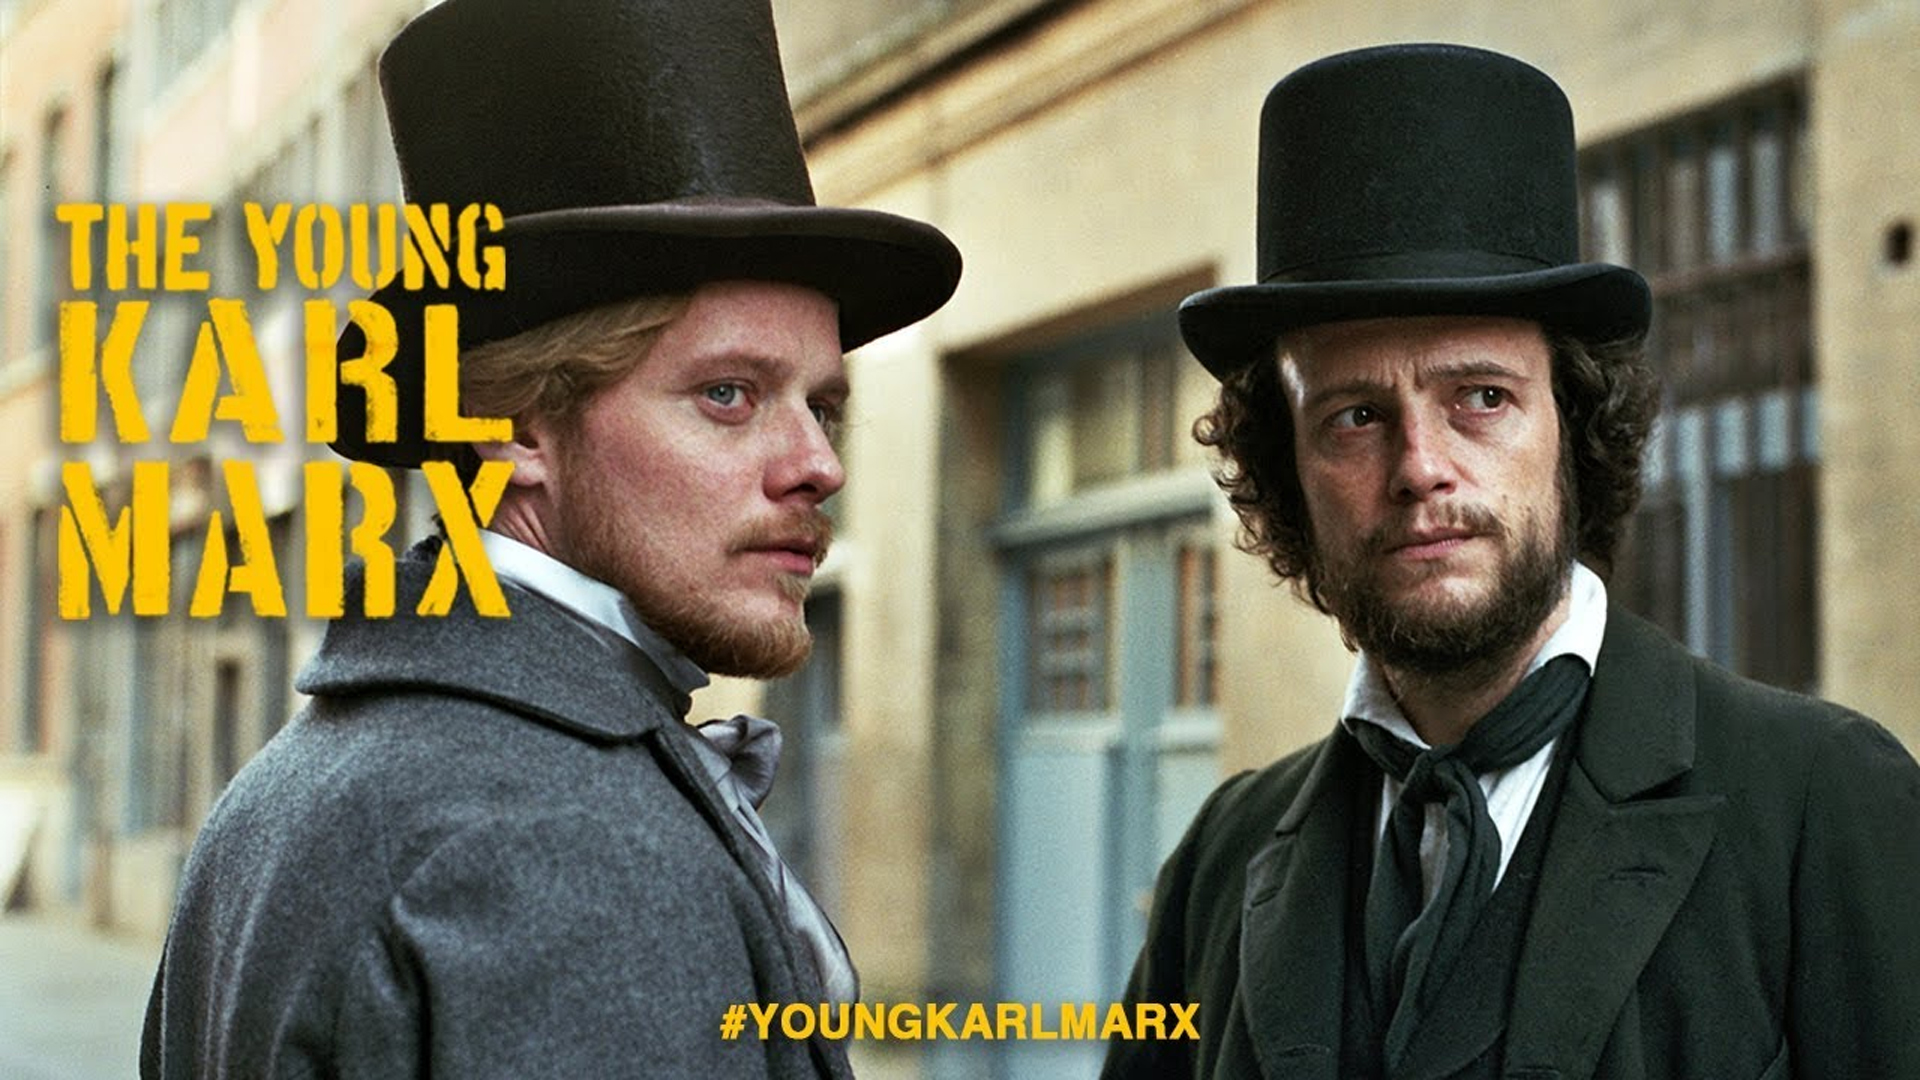 Movie poster for The Young Karl Marx